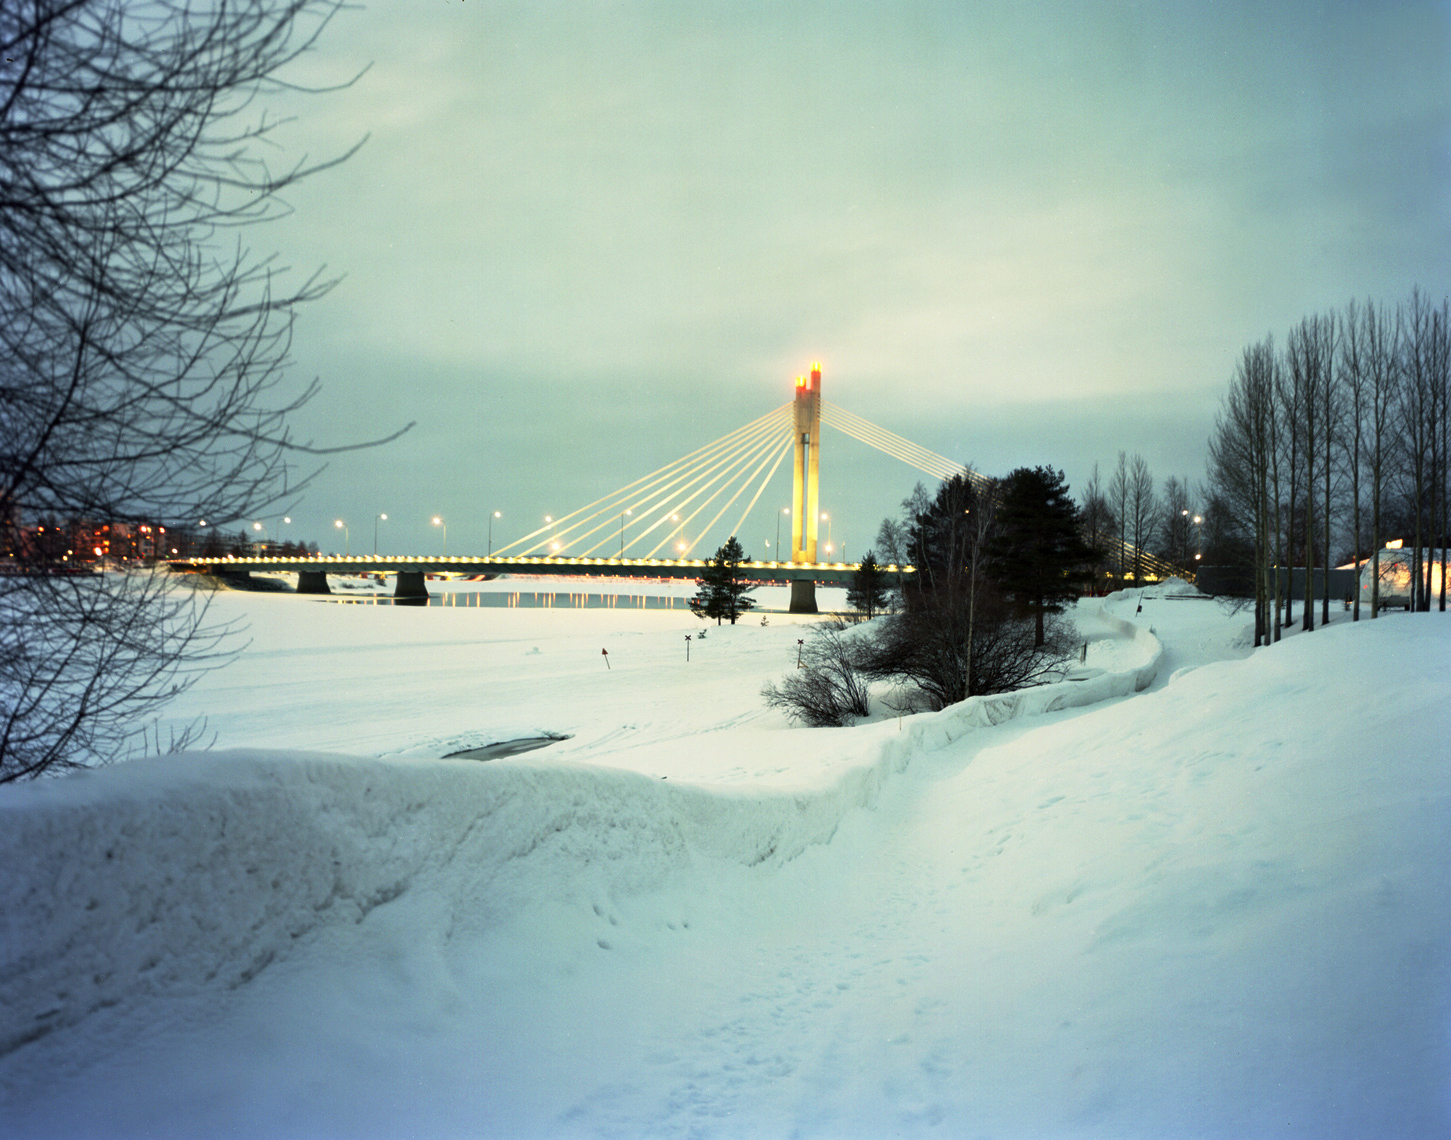 Lapland-bridge.jpg